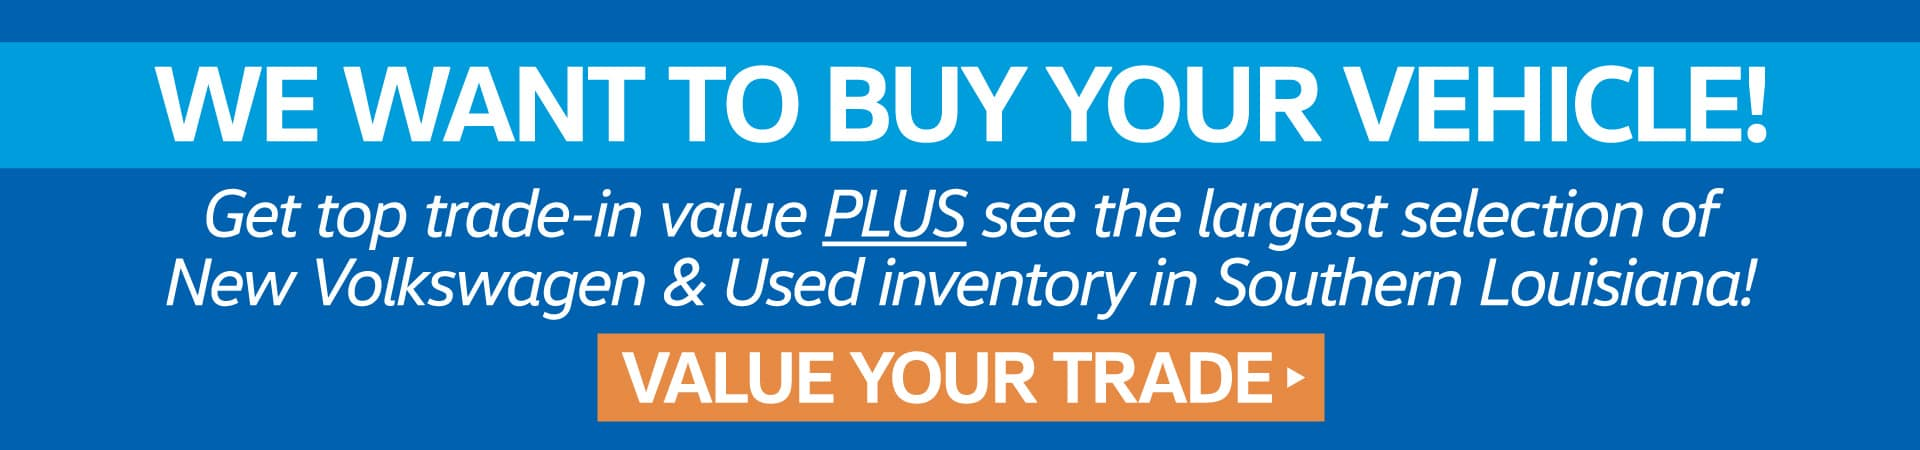 We want to buy your vehicle - Click to Value Your Trade